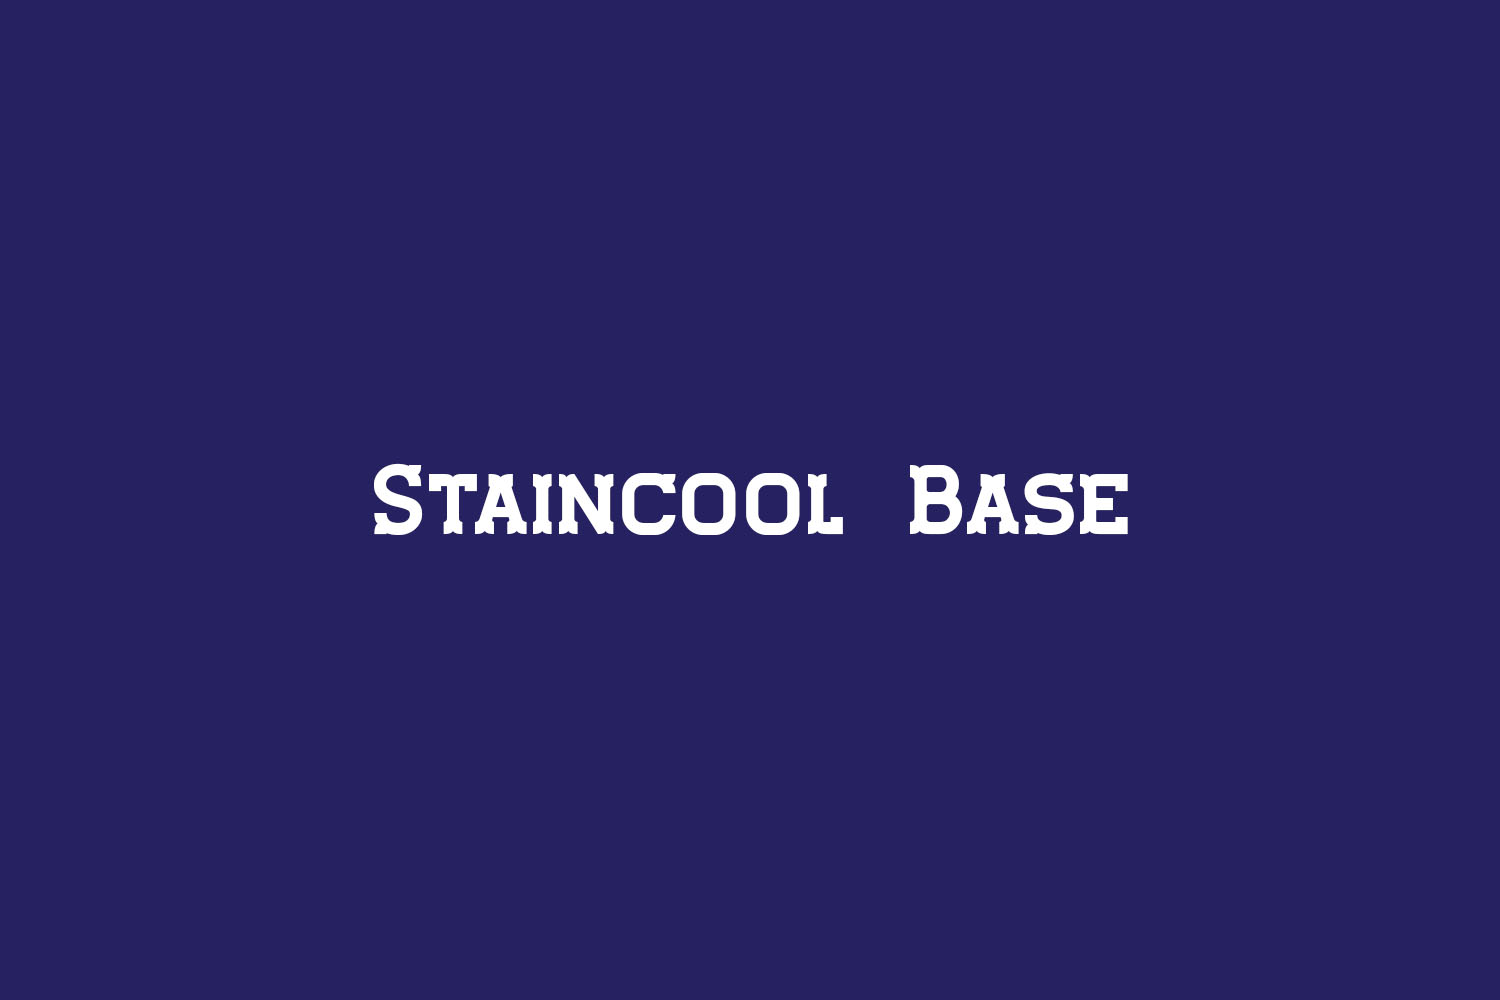 Staincool Base Free Font